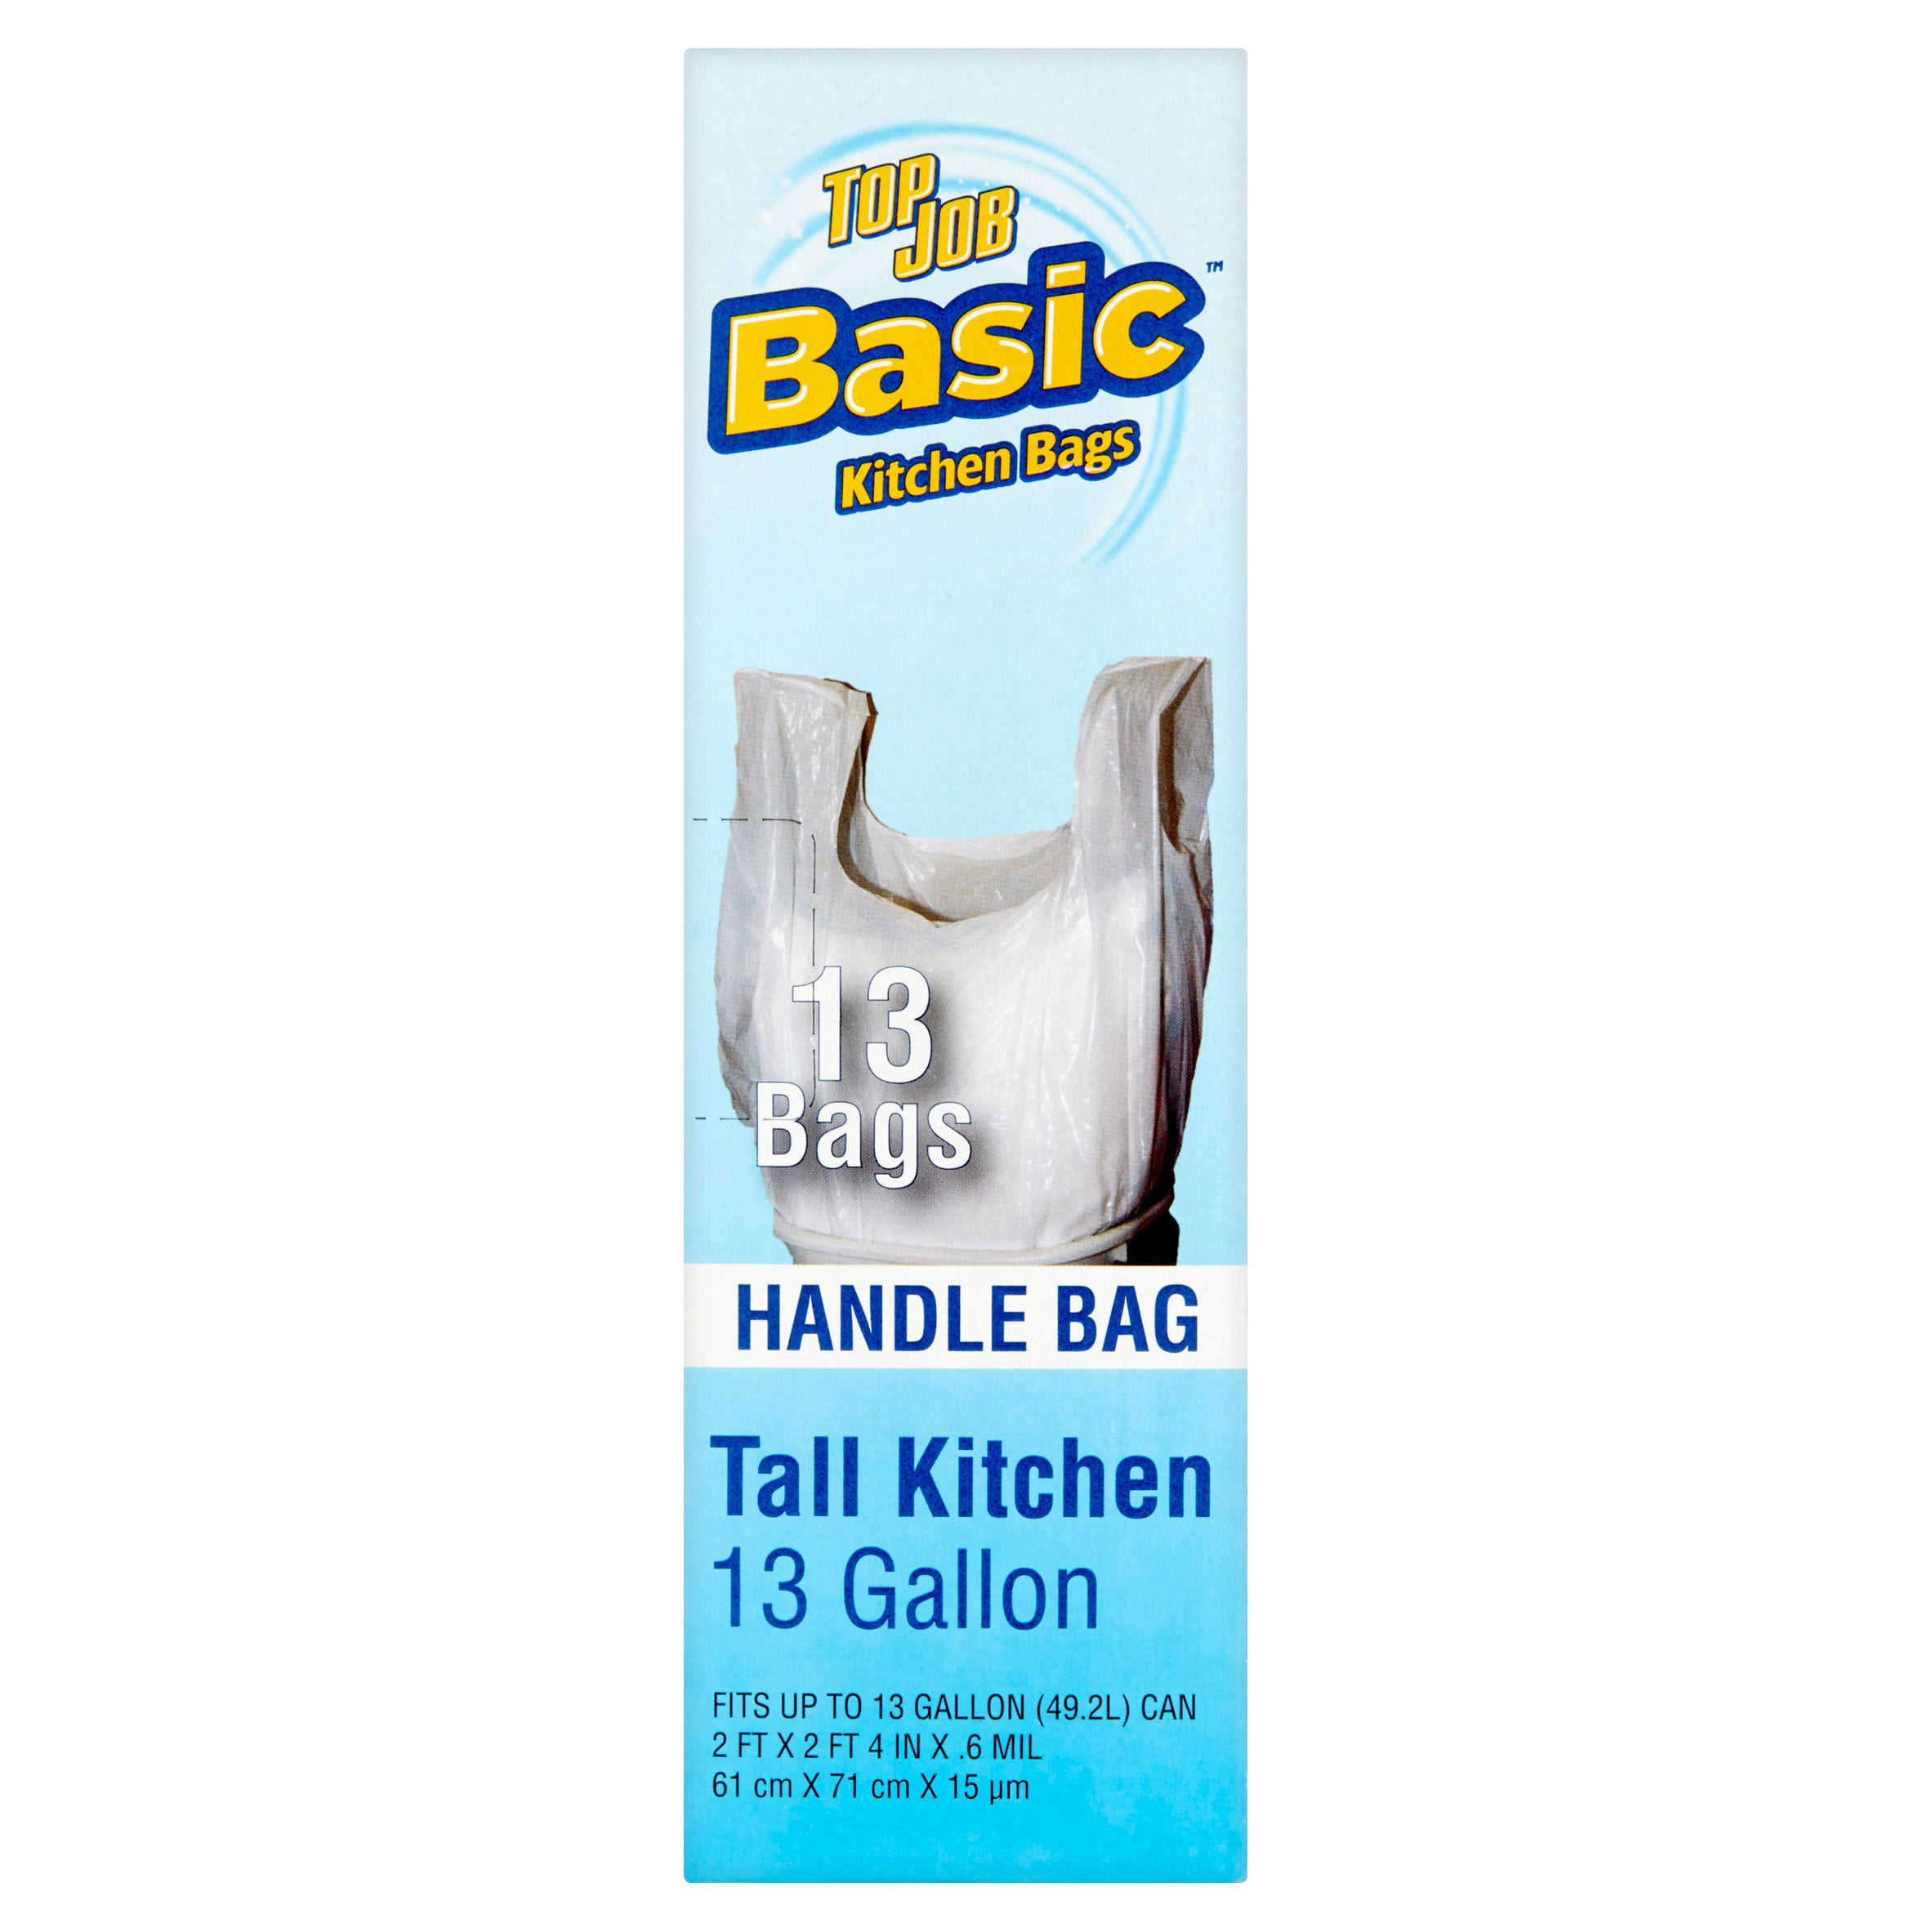 Top Job Basic Tall Kitchen Handle Bags, 13 count - Walmart.com